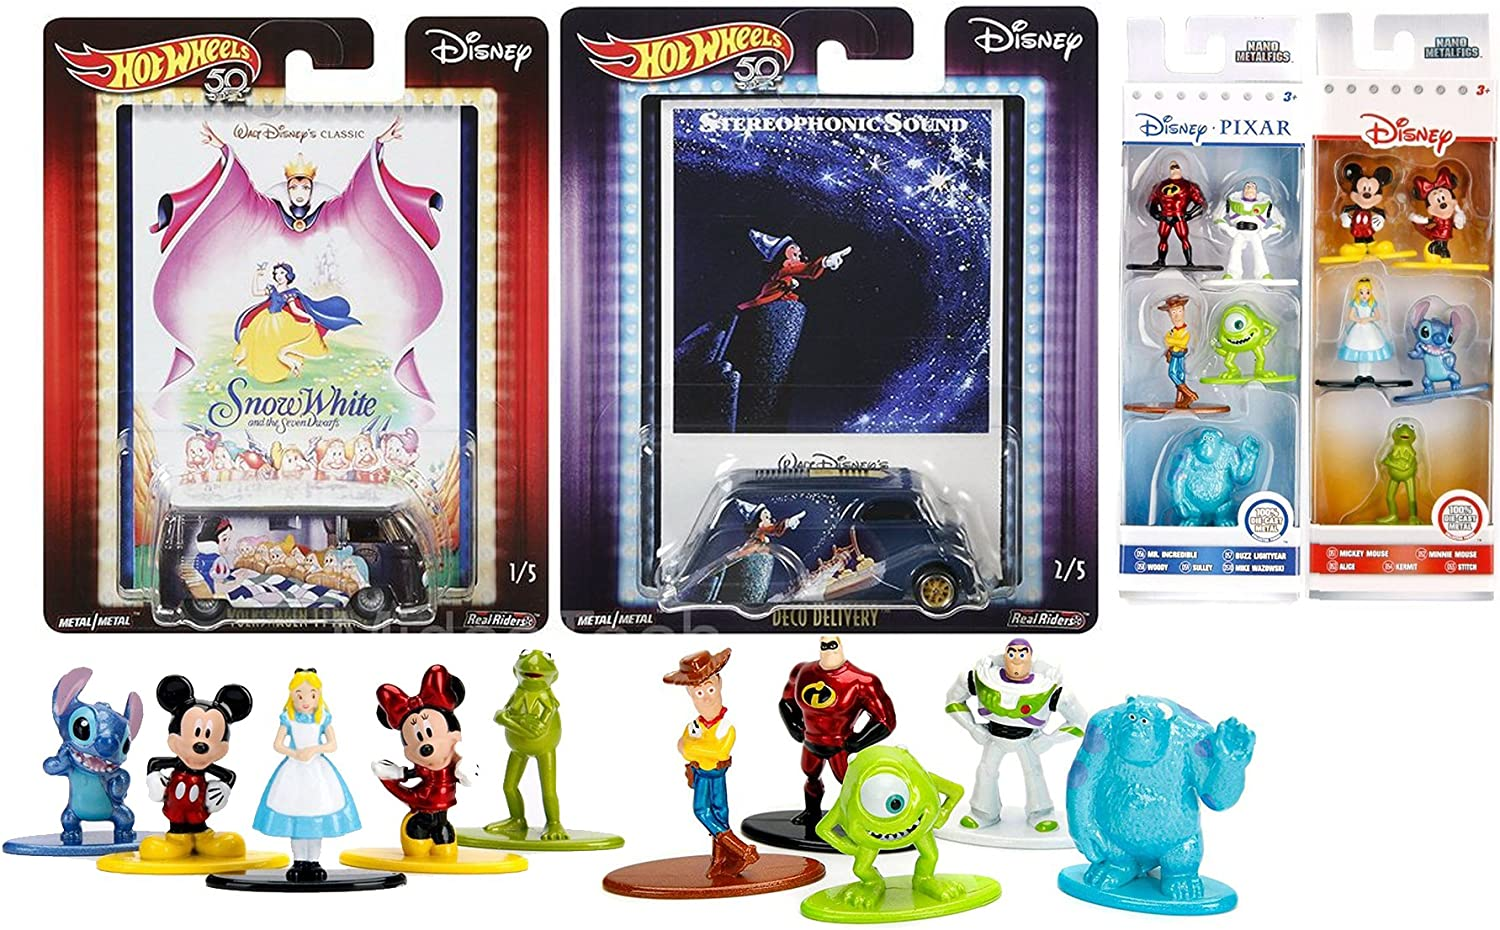 Pop Disney Movie Hot Wheels Snow White   Fantasia Culture Movie Poster Card Art + 10 Mini Character Metal Figures Pixar Mickey Mouse   Kermit Friends Collection